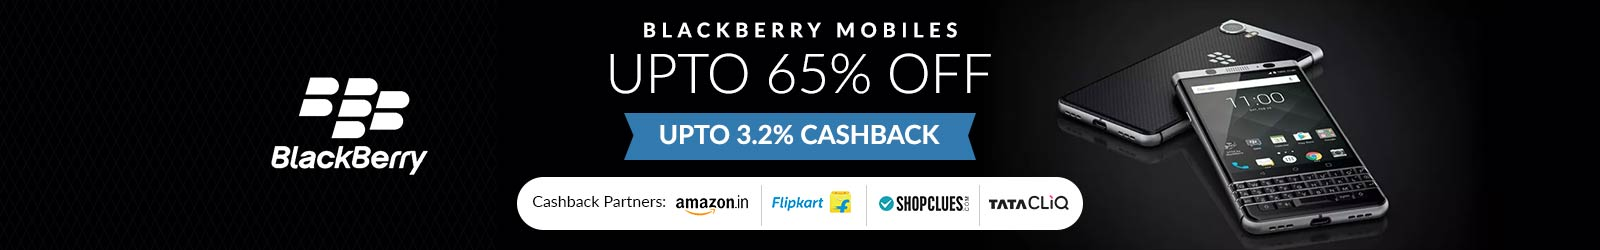 Blackberry Mobile Price List India: 65% Off Offers on All Blackberry